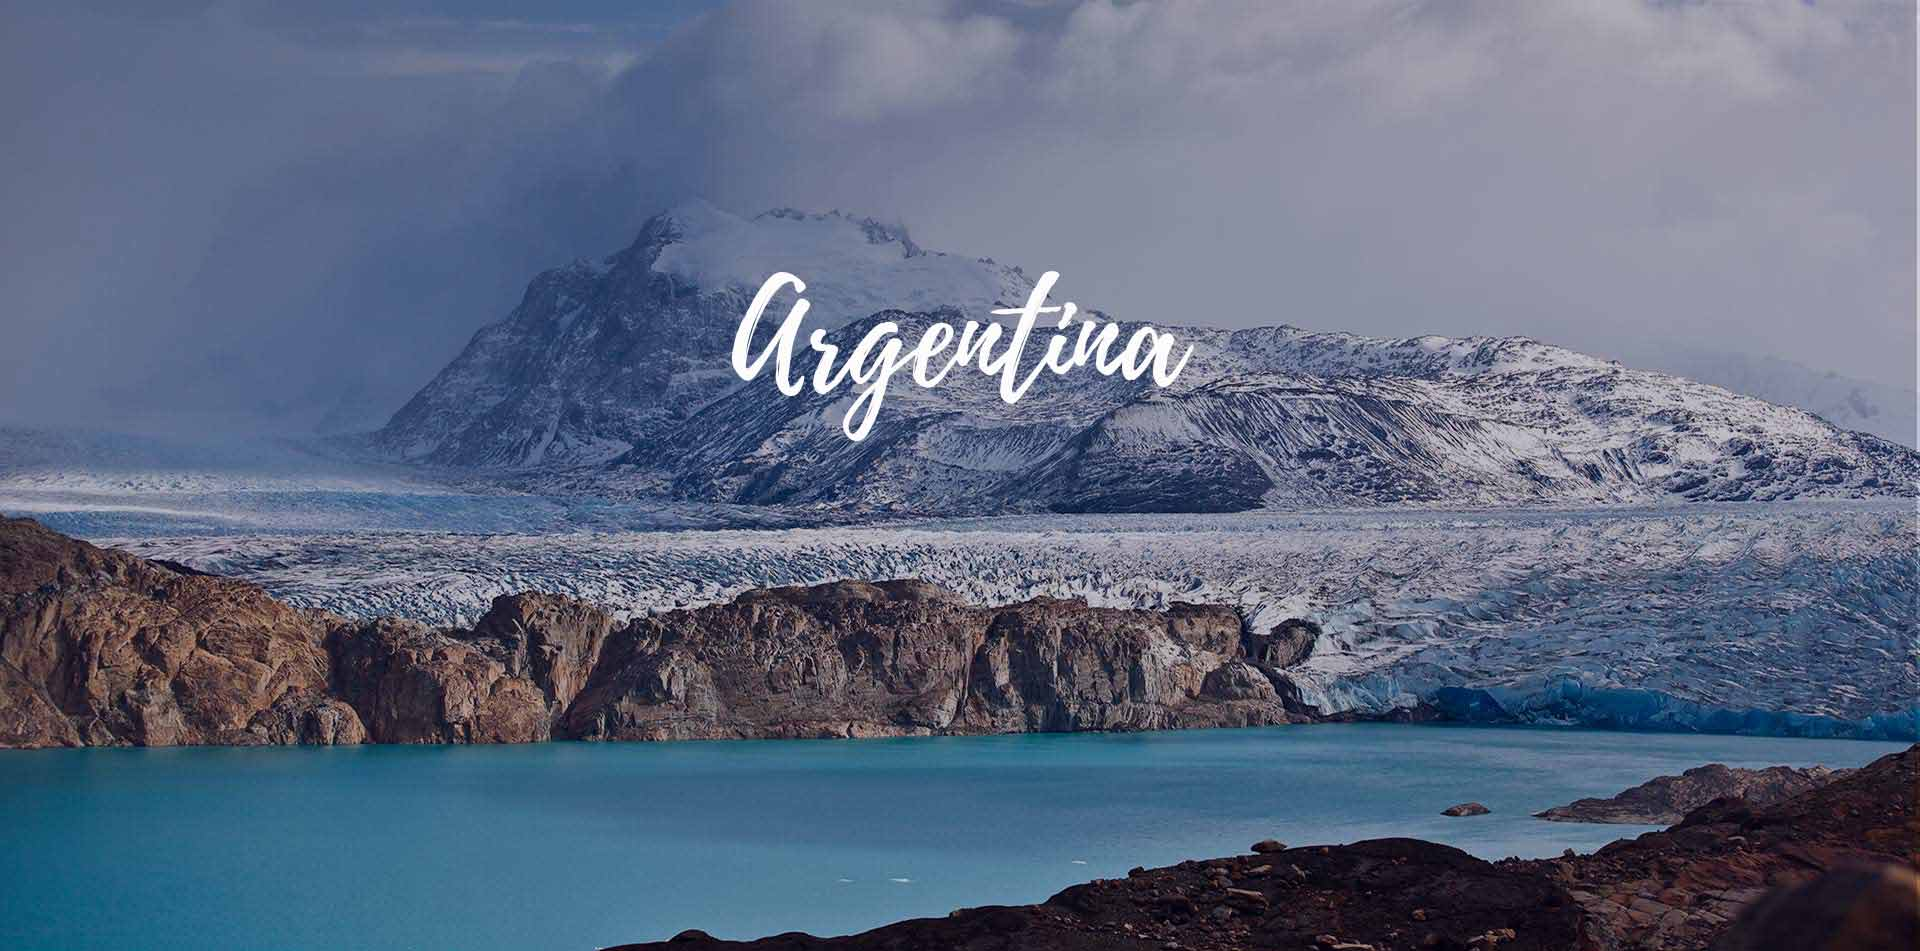 South America Argentina Santa Cruz aerial panoramic view of Perito Moreno Glacier - luxury vacation destinations